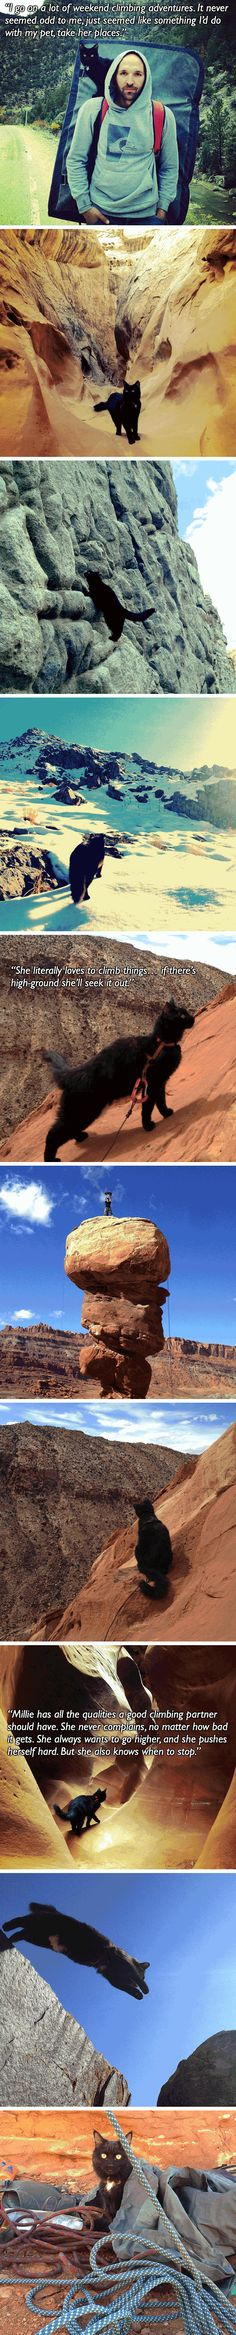 The adventure: I'll do this someday with my pet